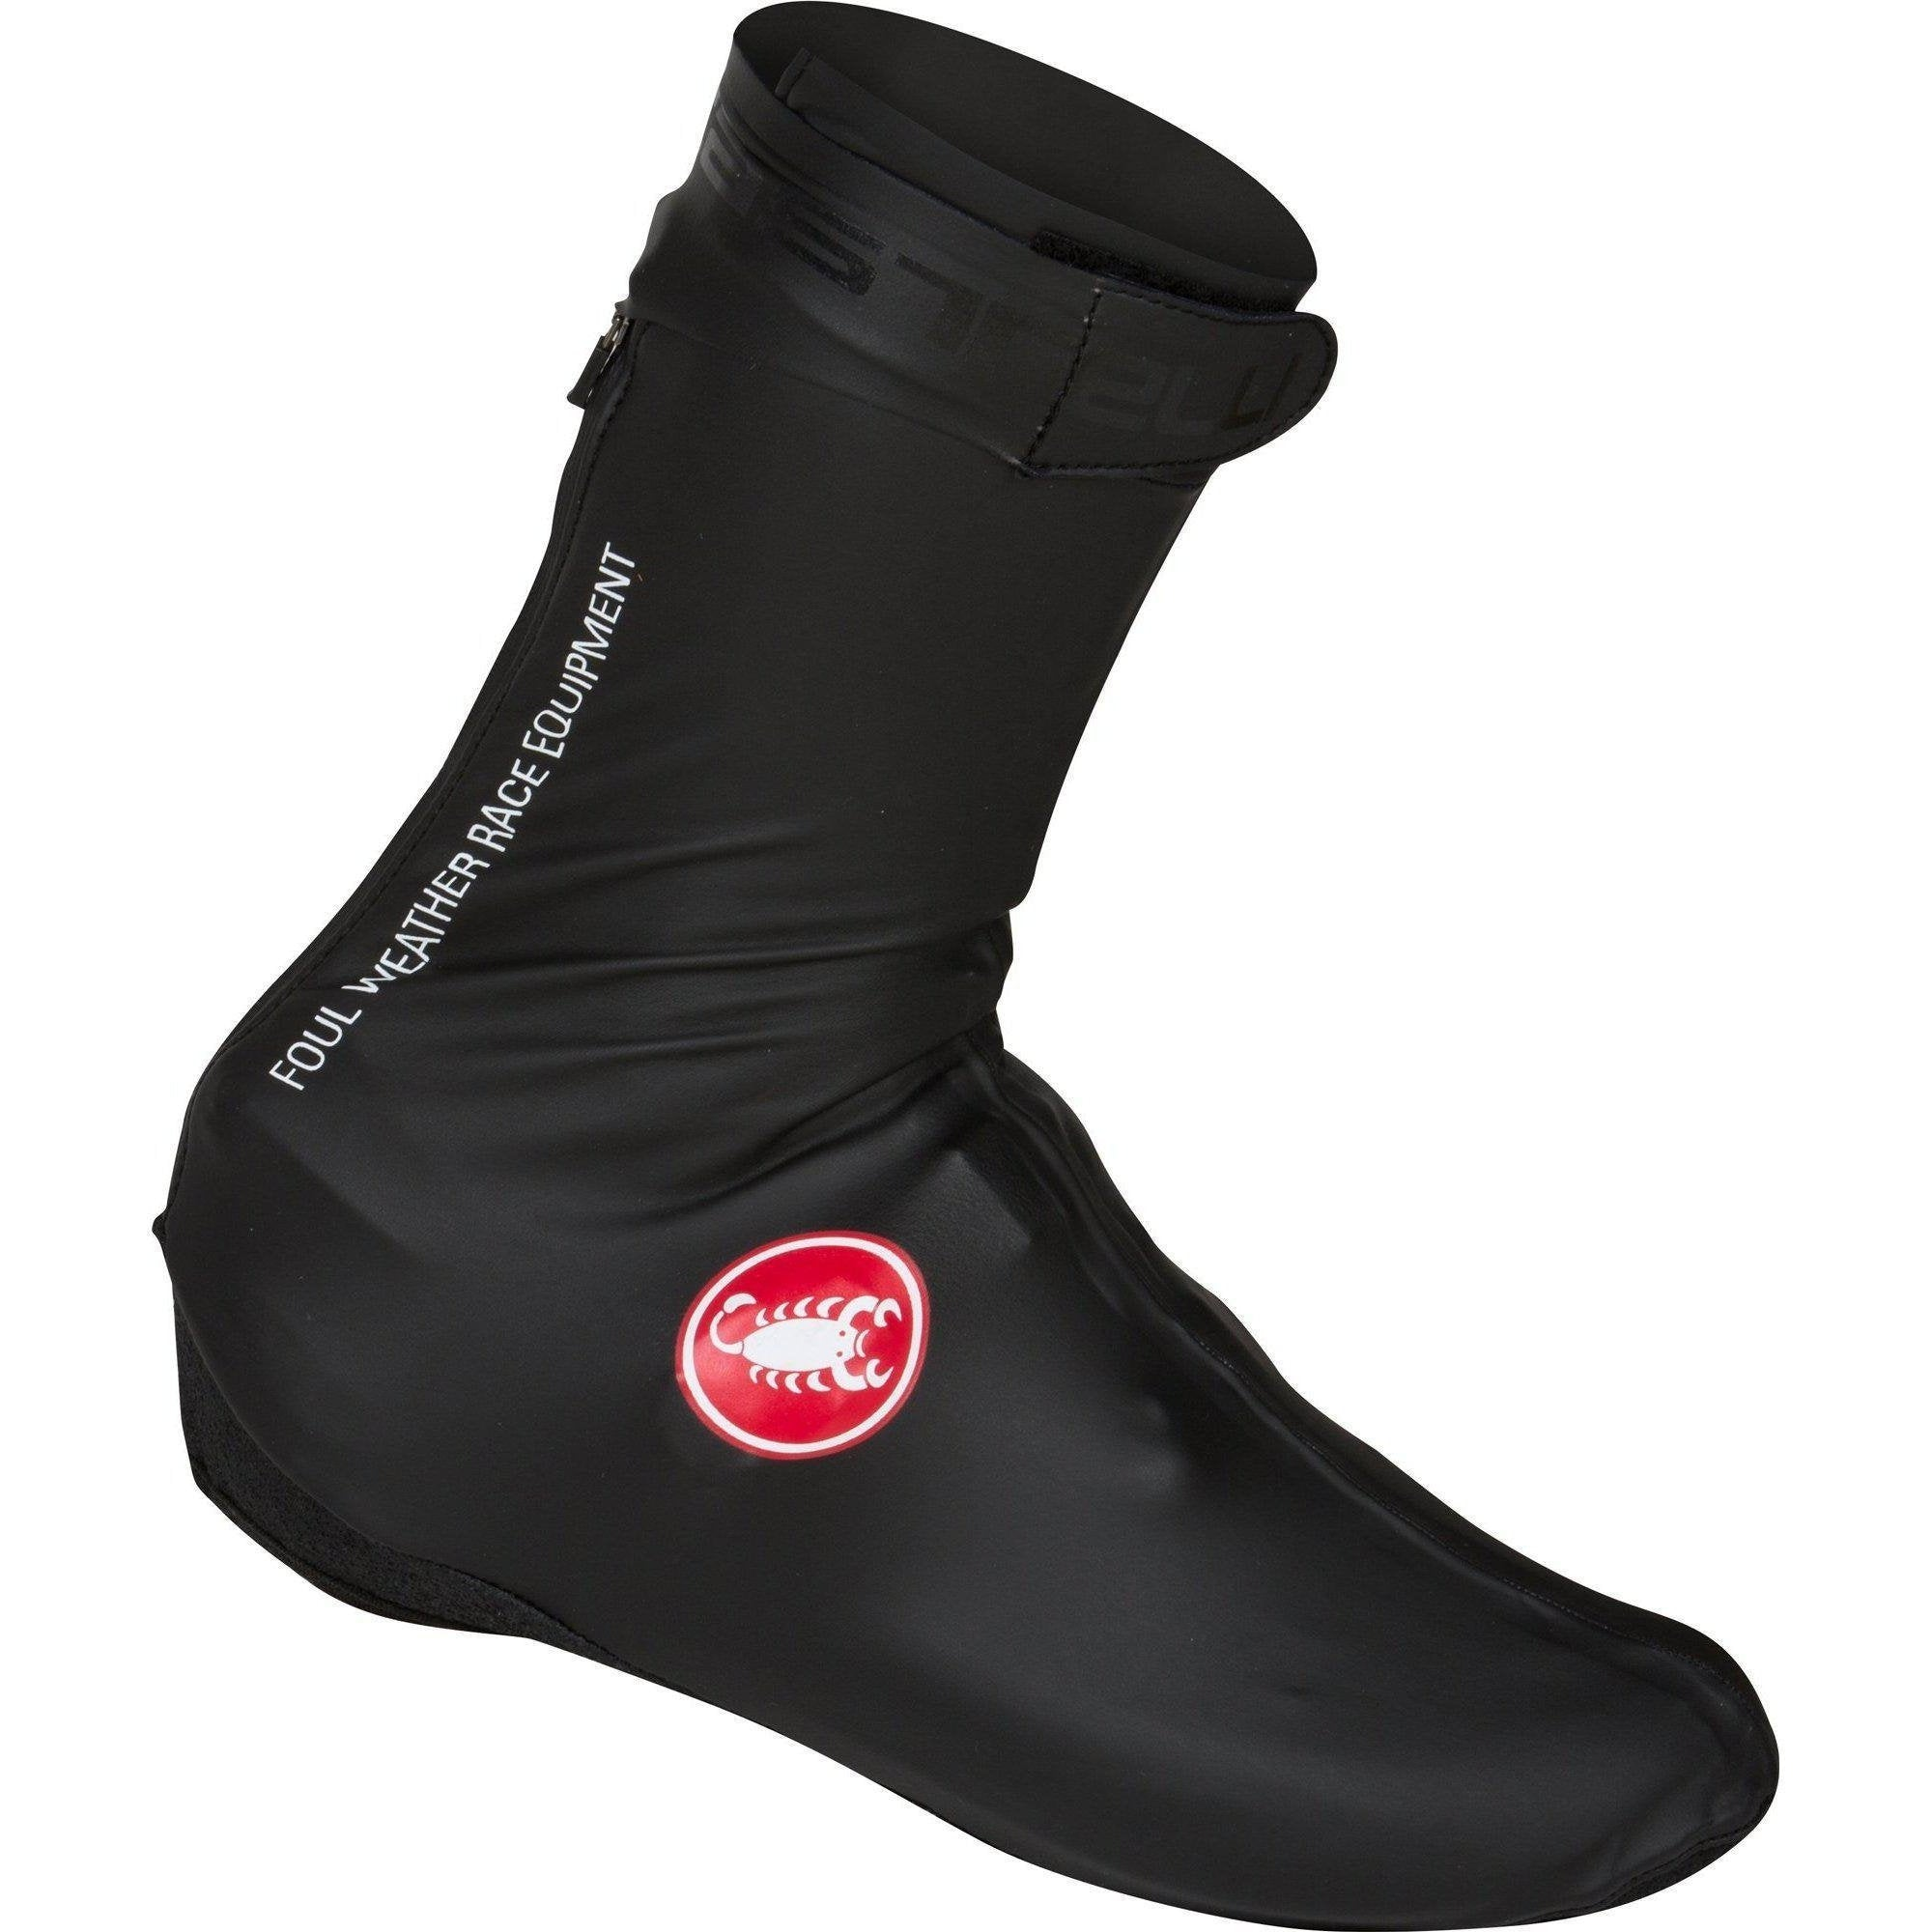 Castelli-Castelli Pioggia 3 Shoe Covers-Black-S-CS165390102-saddleback-elite-performance-cycling